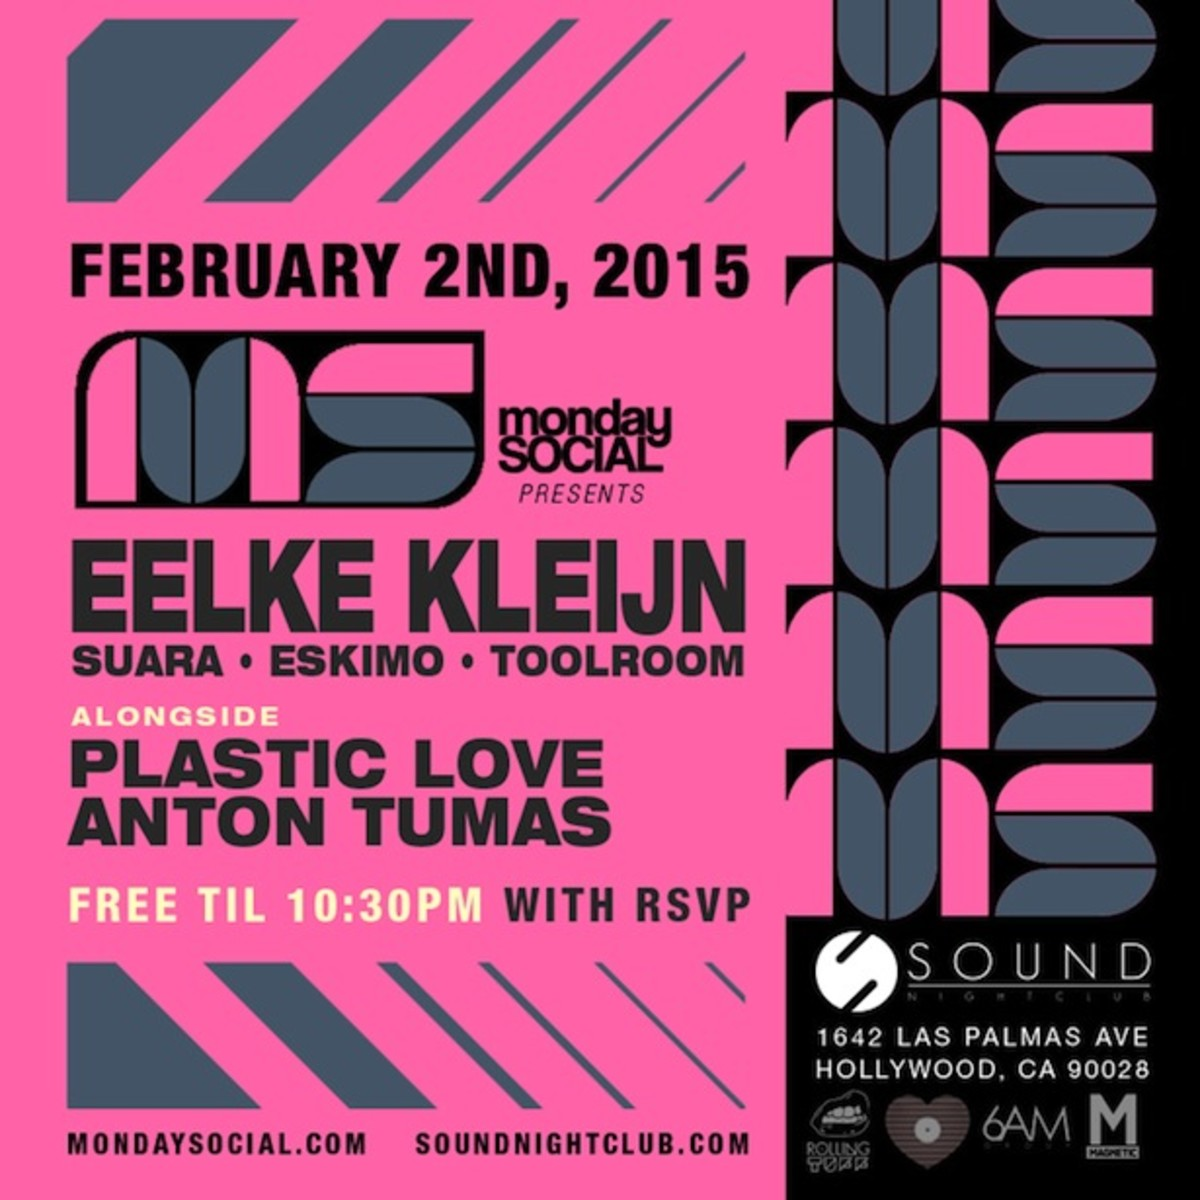 Monday Social presents Eelke Kleijn Tonight at Sound!